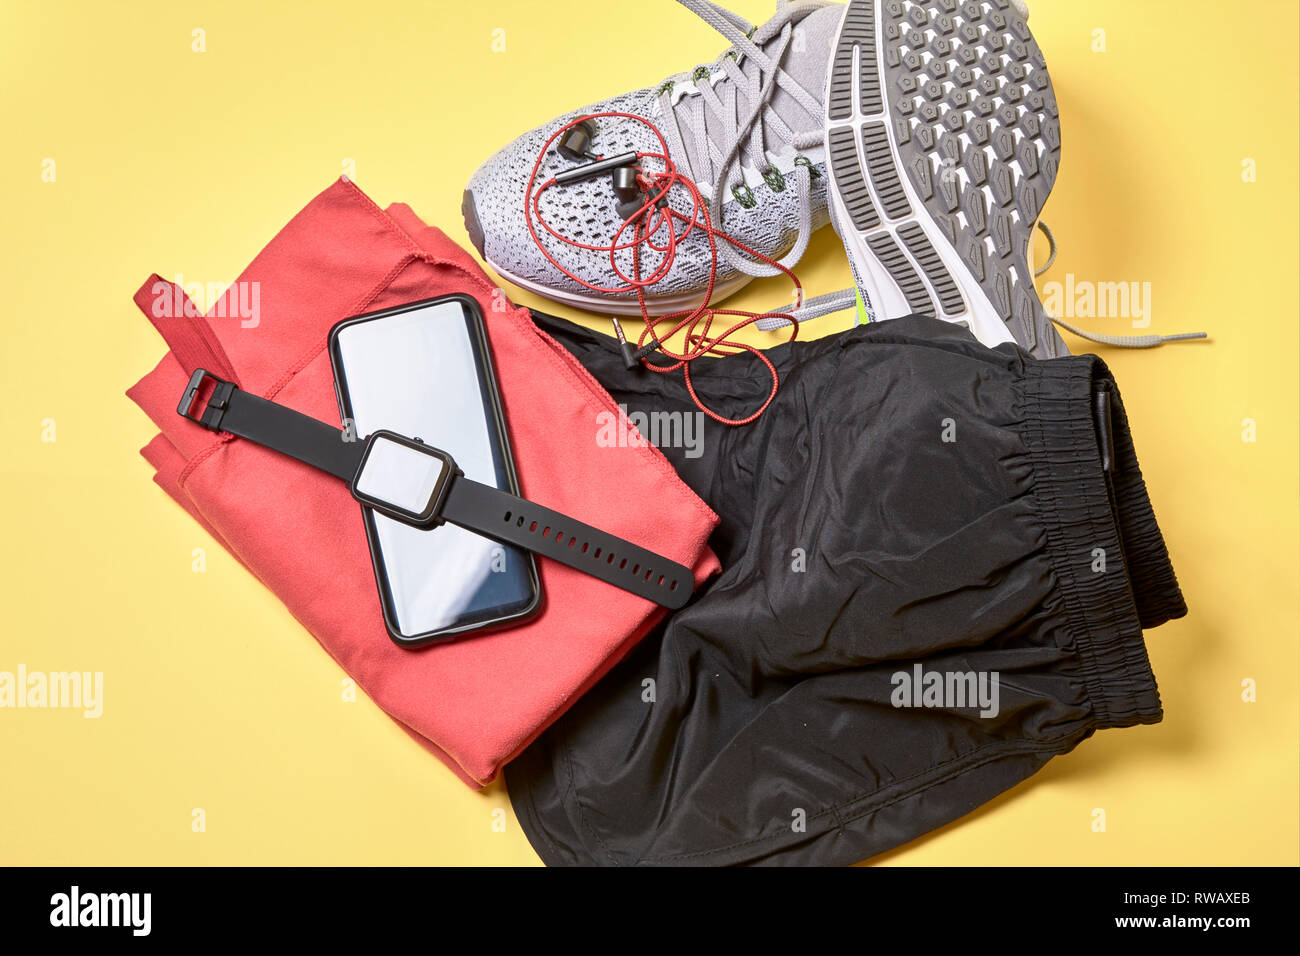 running shoes with a pair of shorts, a red towel and technological accessories on a yellow background - Stock Image